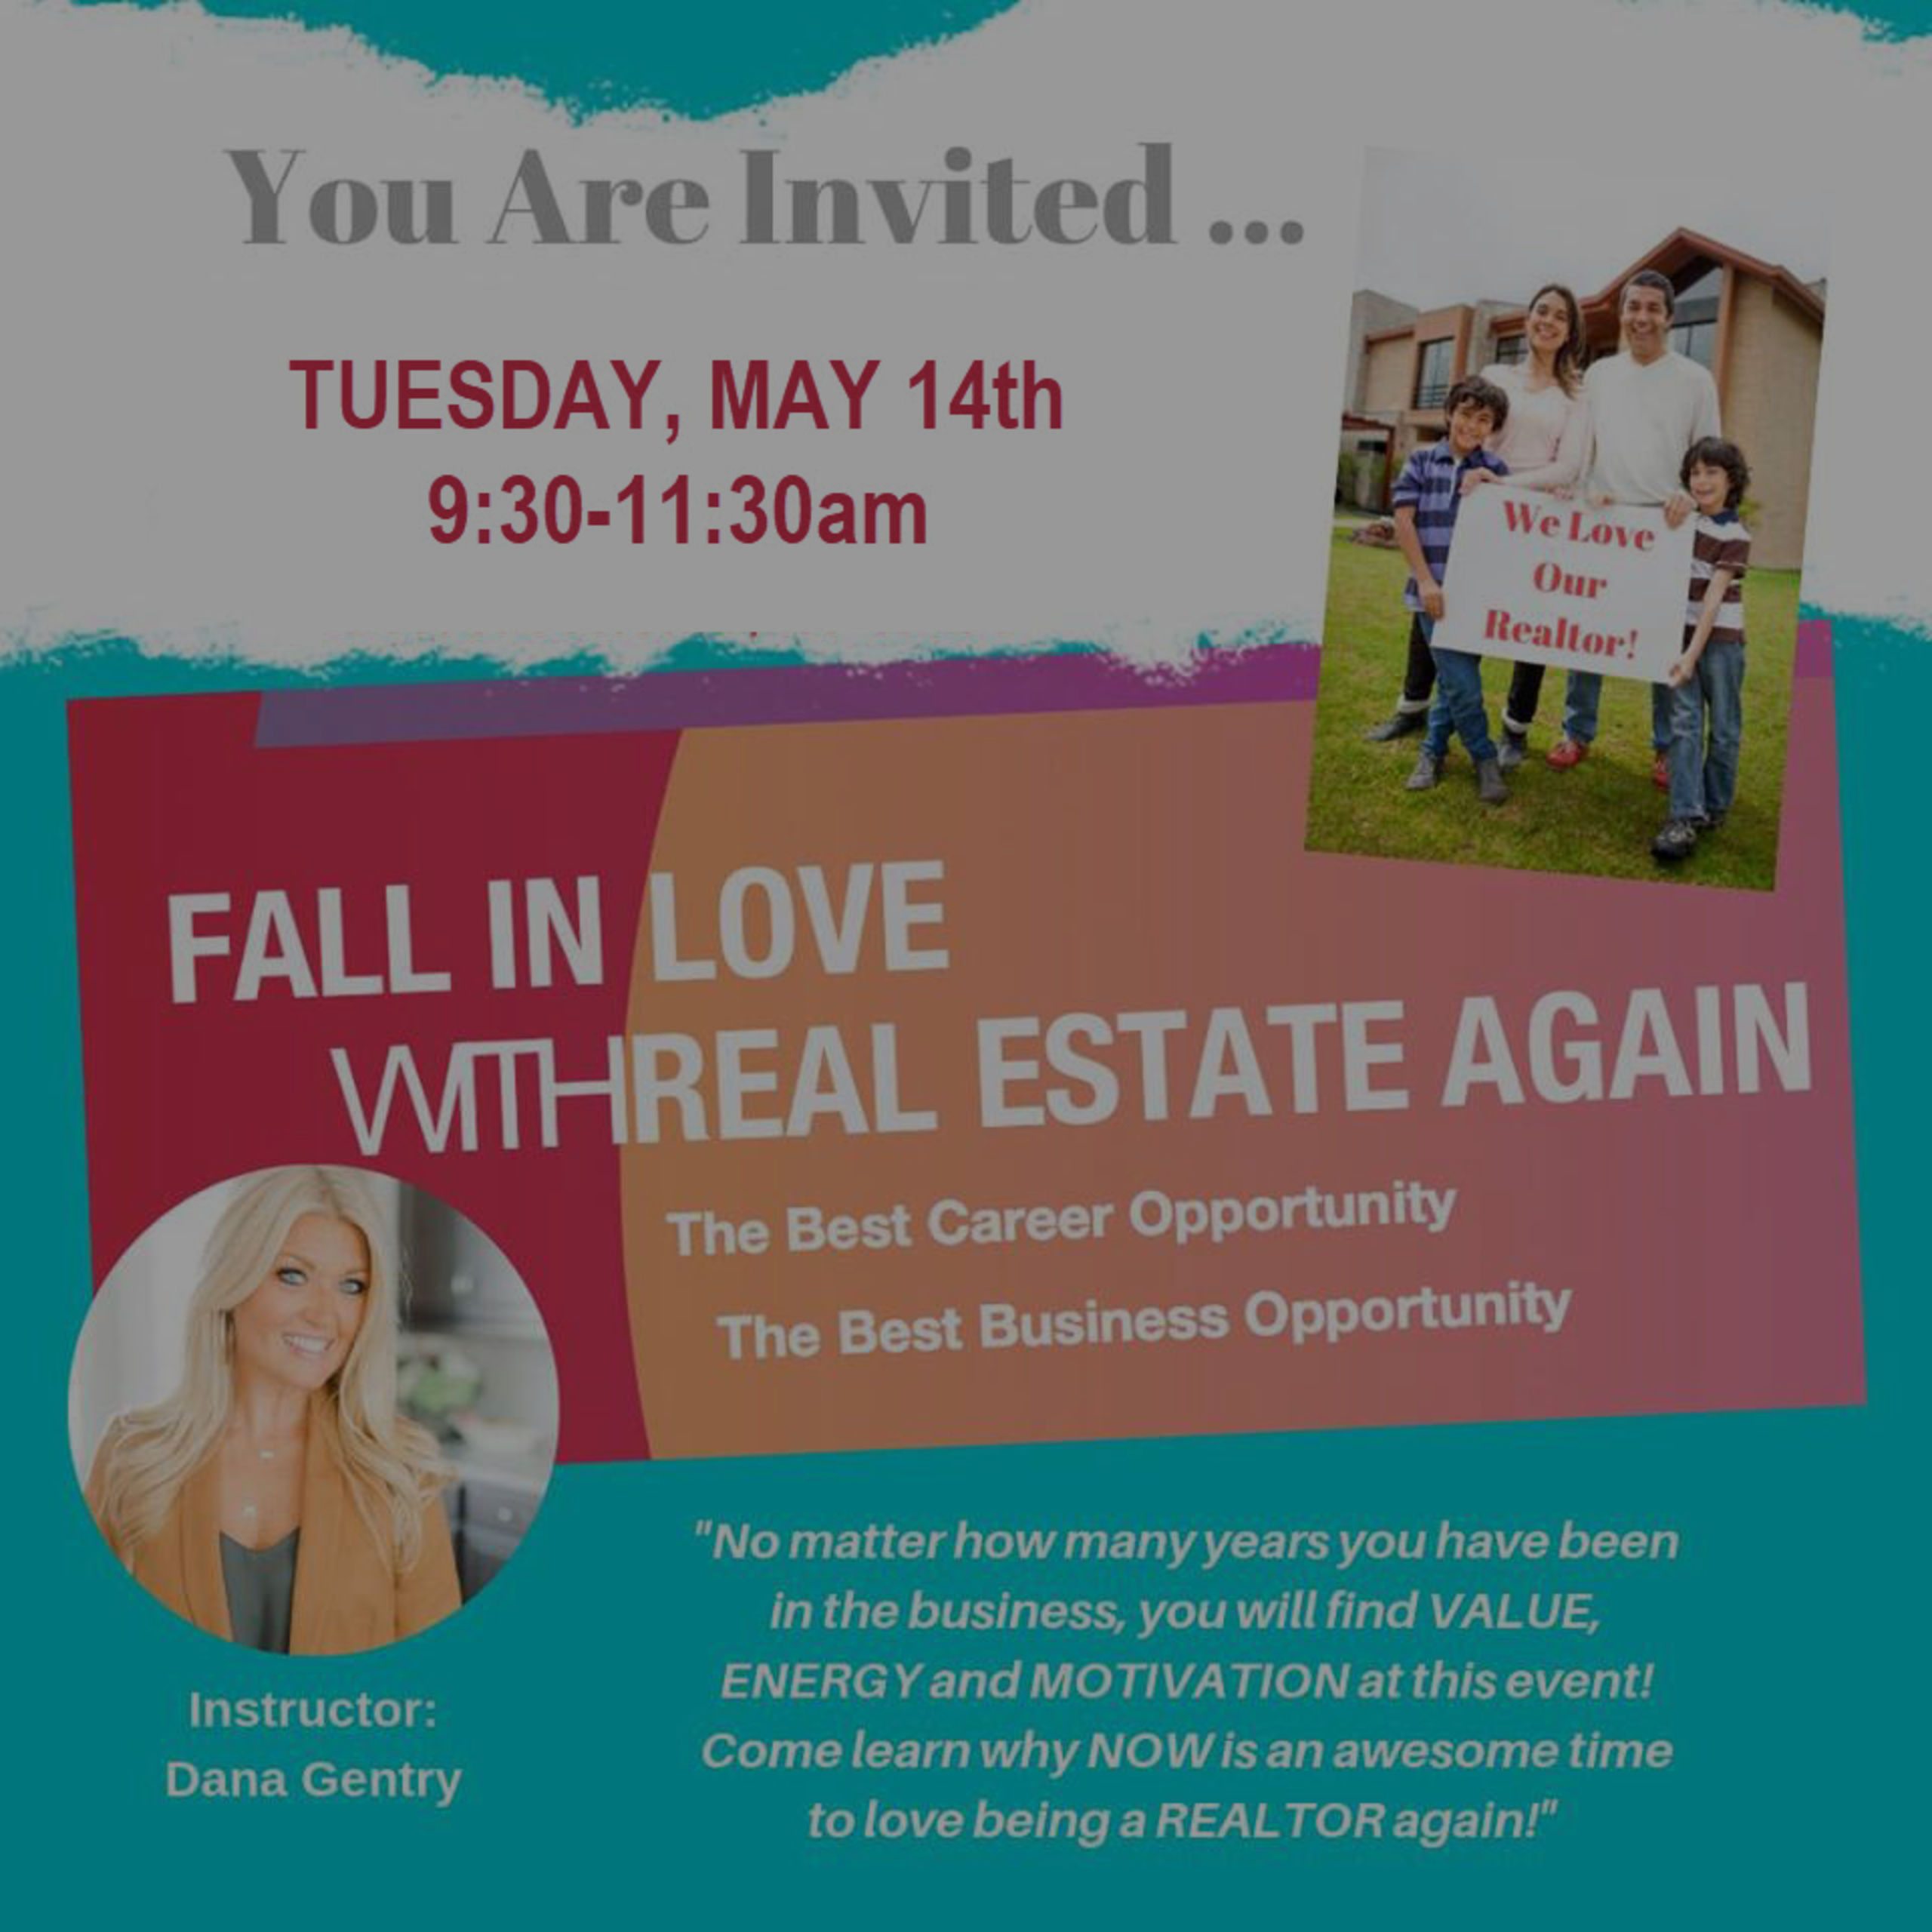 Fall In Love With Real Estate Again!